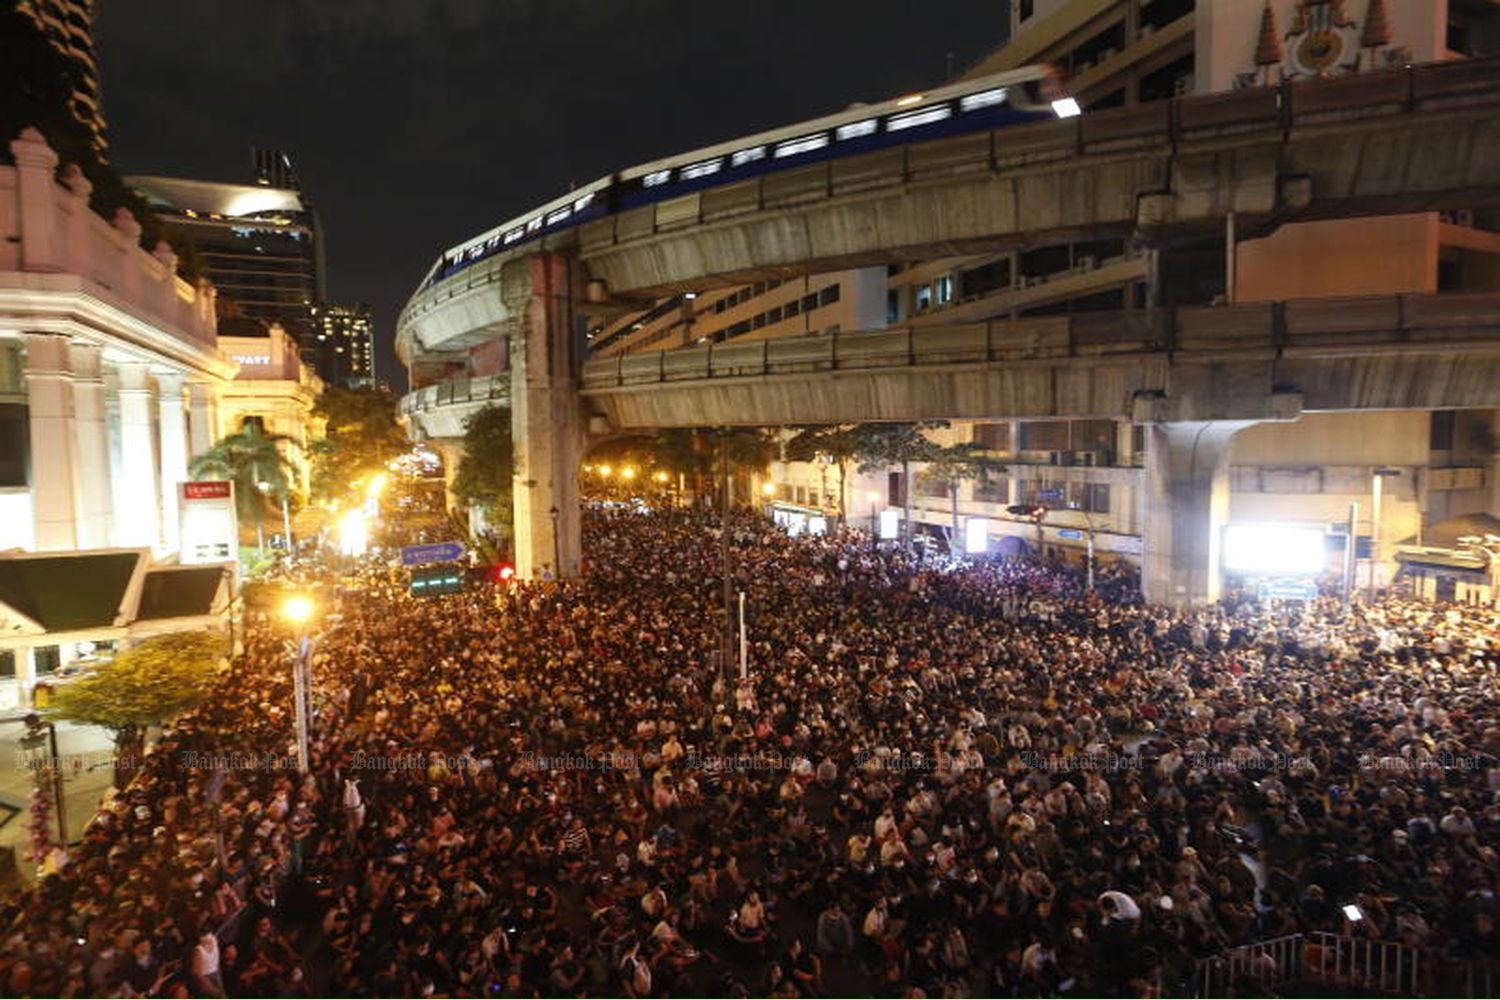 Anti-government protesters block Ratchaprasong intersection in Bangkok on Thursday night, calling for the resignation of Prime Minister Prayut Chan-o-cha. (Photo by Arnun Chonmahatrakool)